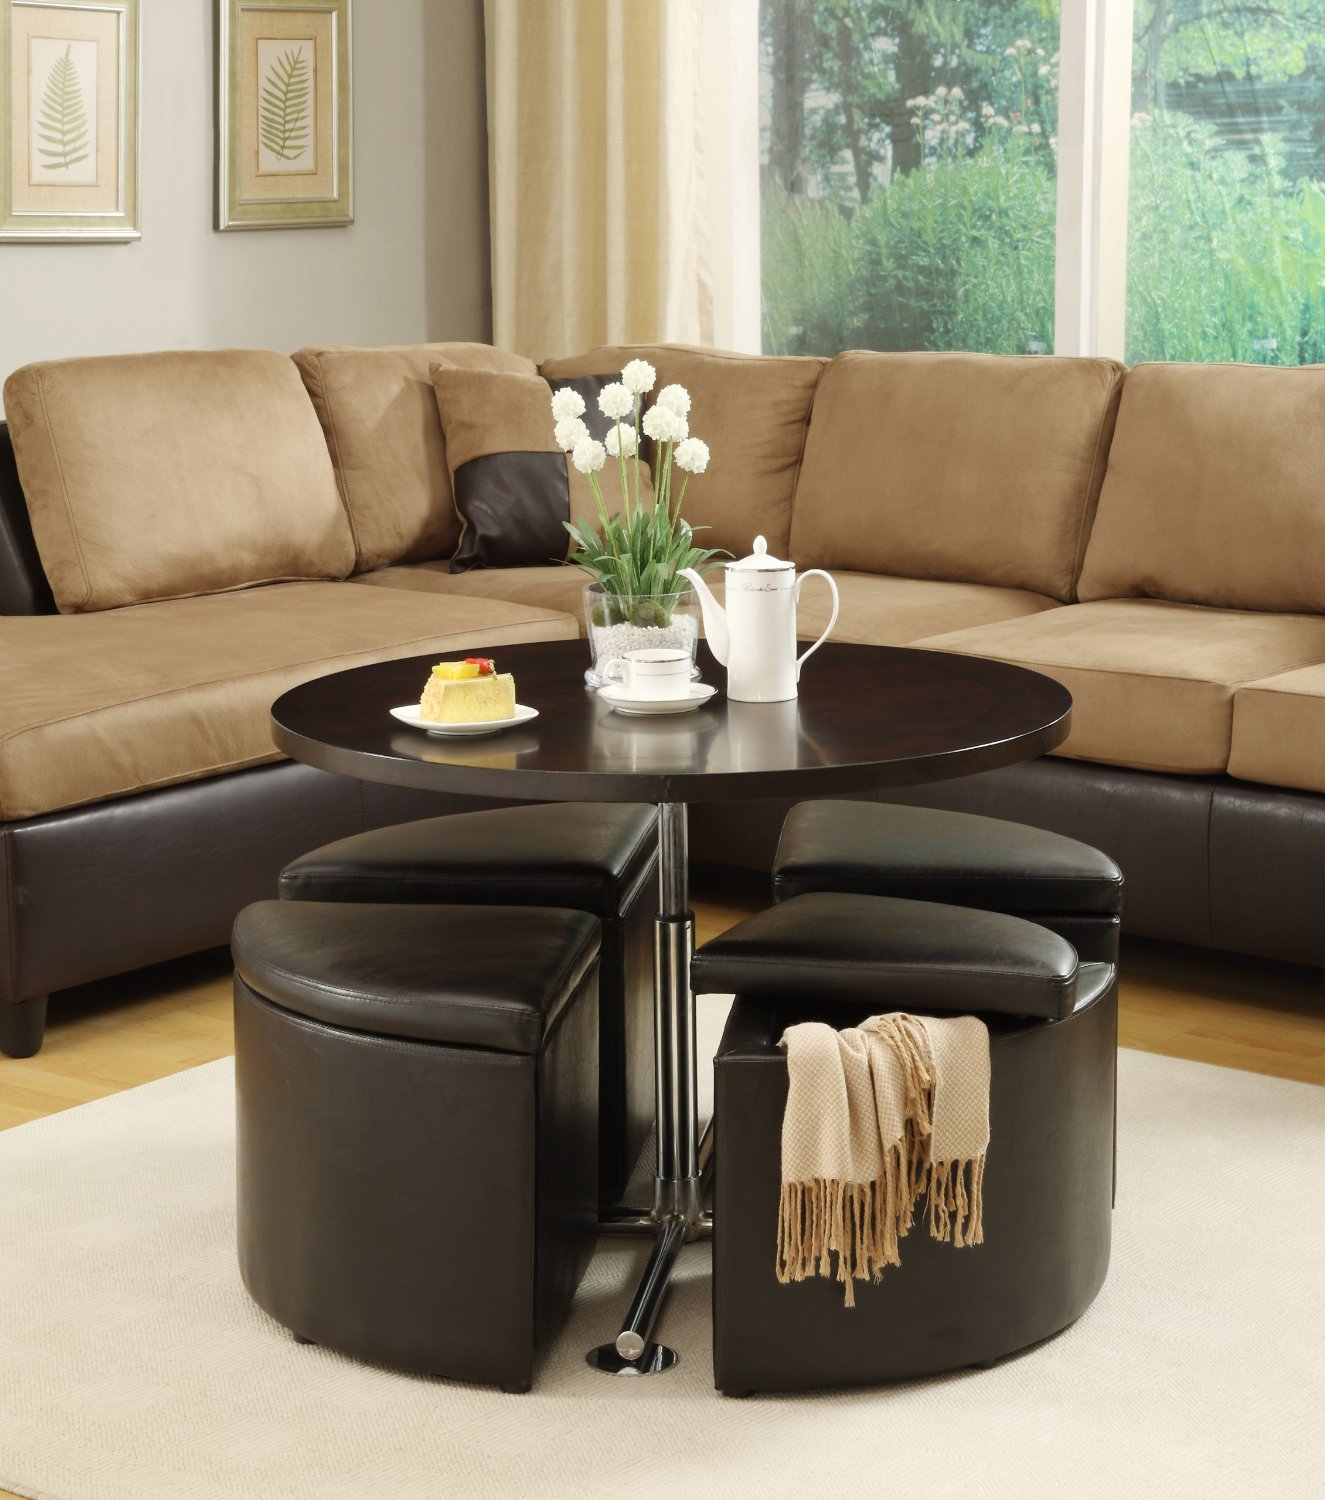 Pleasant Round Coffee Table With Ottoman Chairs Home Decor Ideas Caraccident5 Cool Chair Designs And Ideas Caraccident5Info